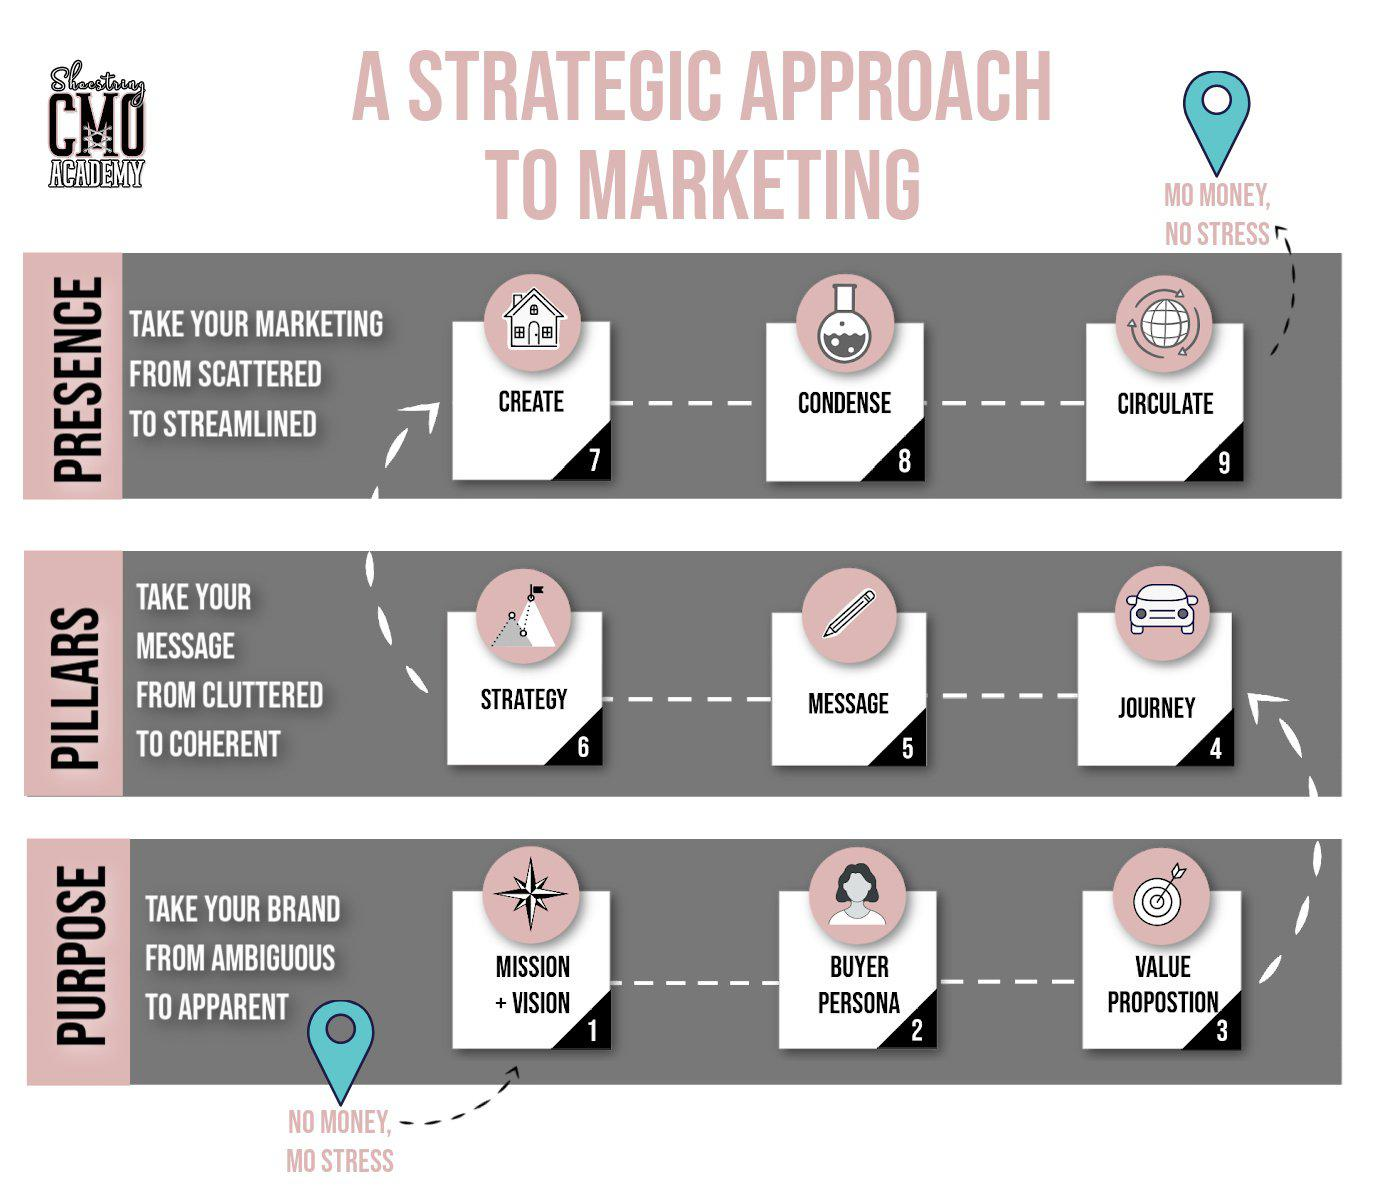 A proven framework to 5X your marketing impact on 5 hours a week with the Shoestring CMO Academy.